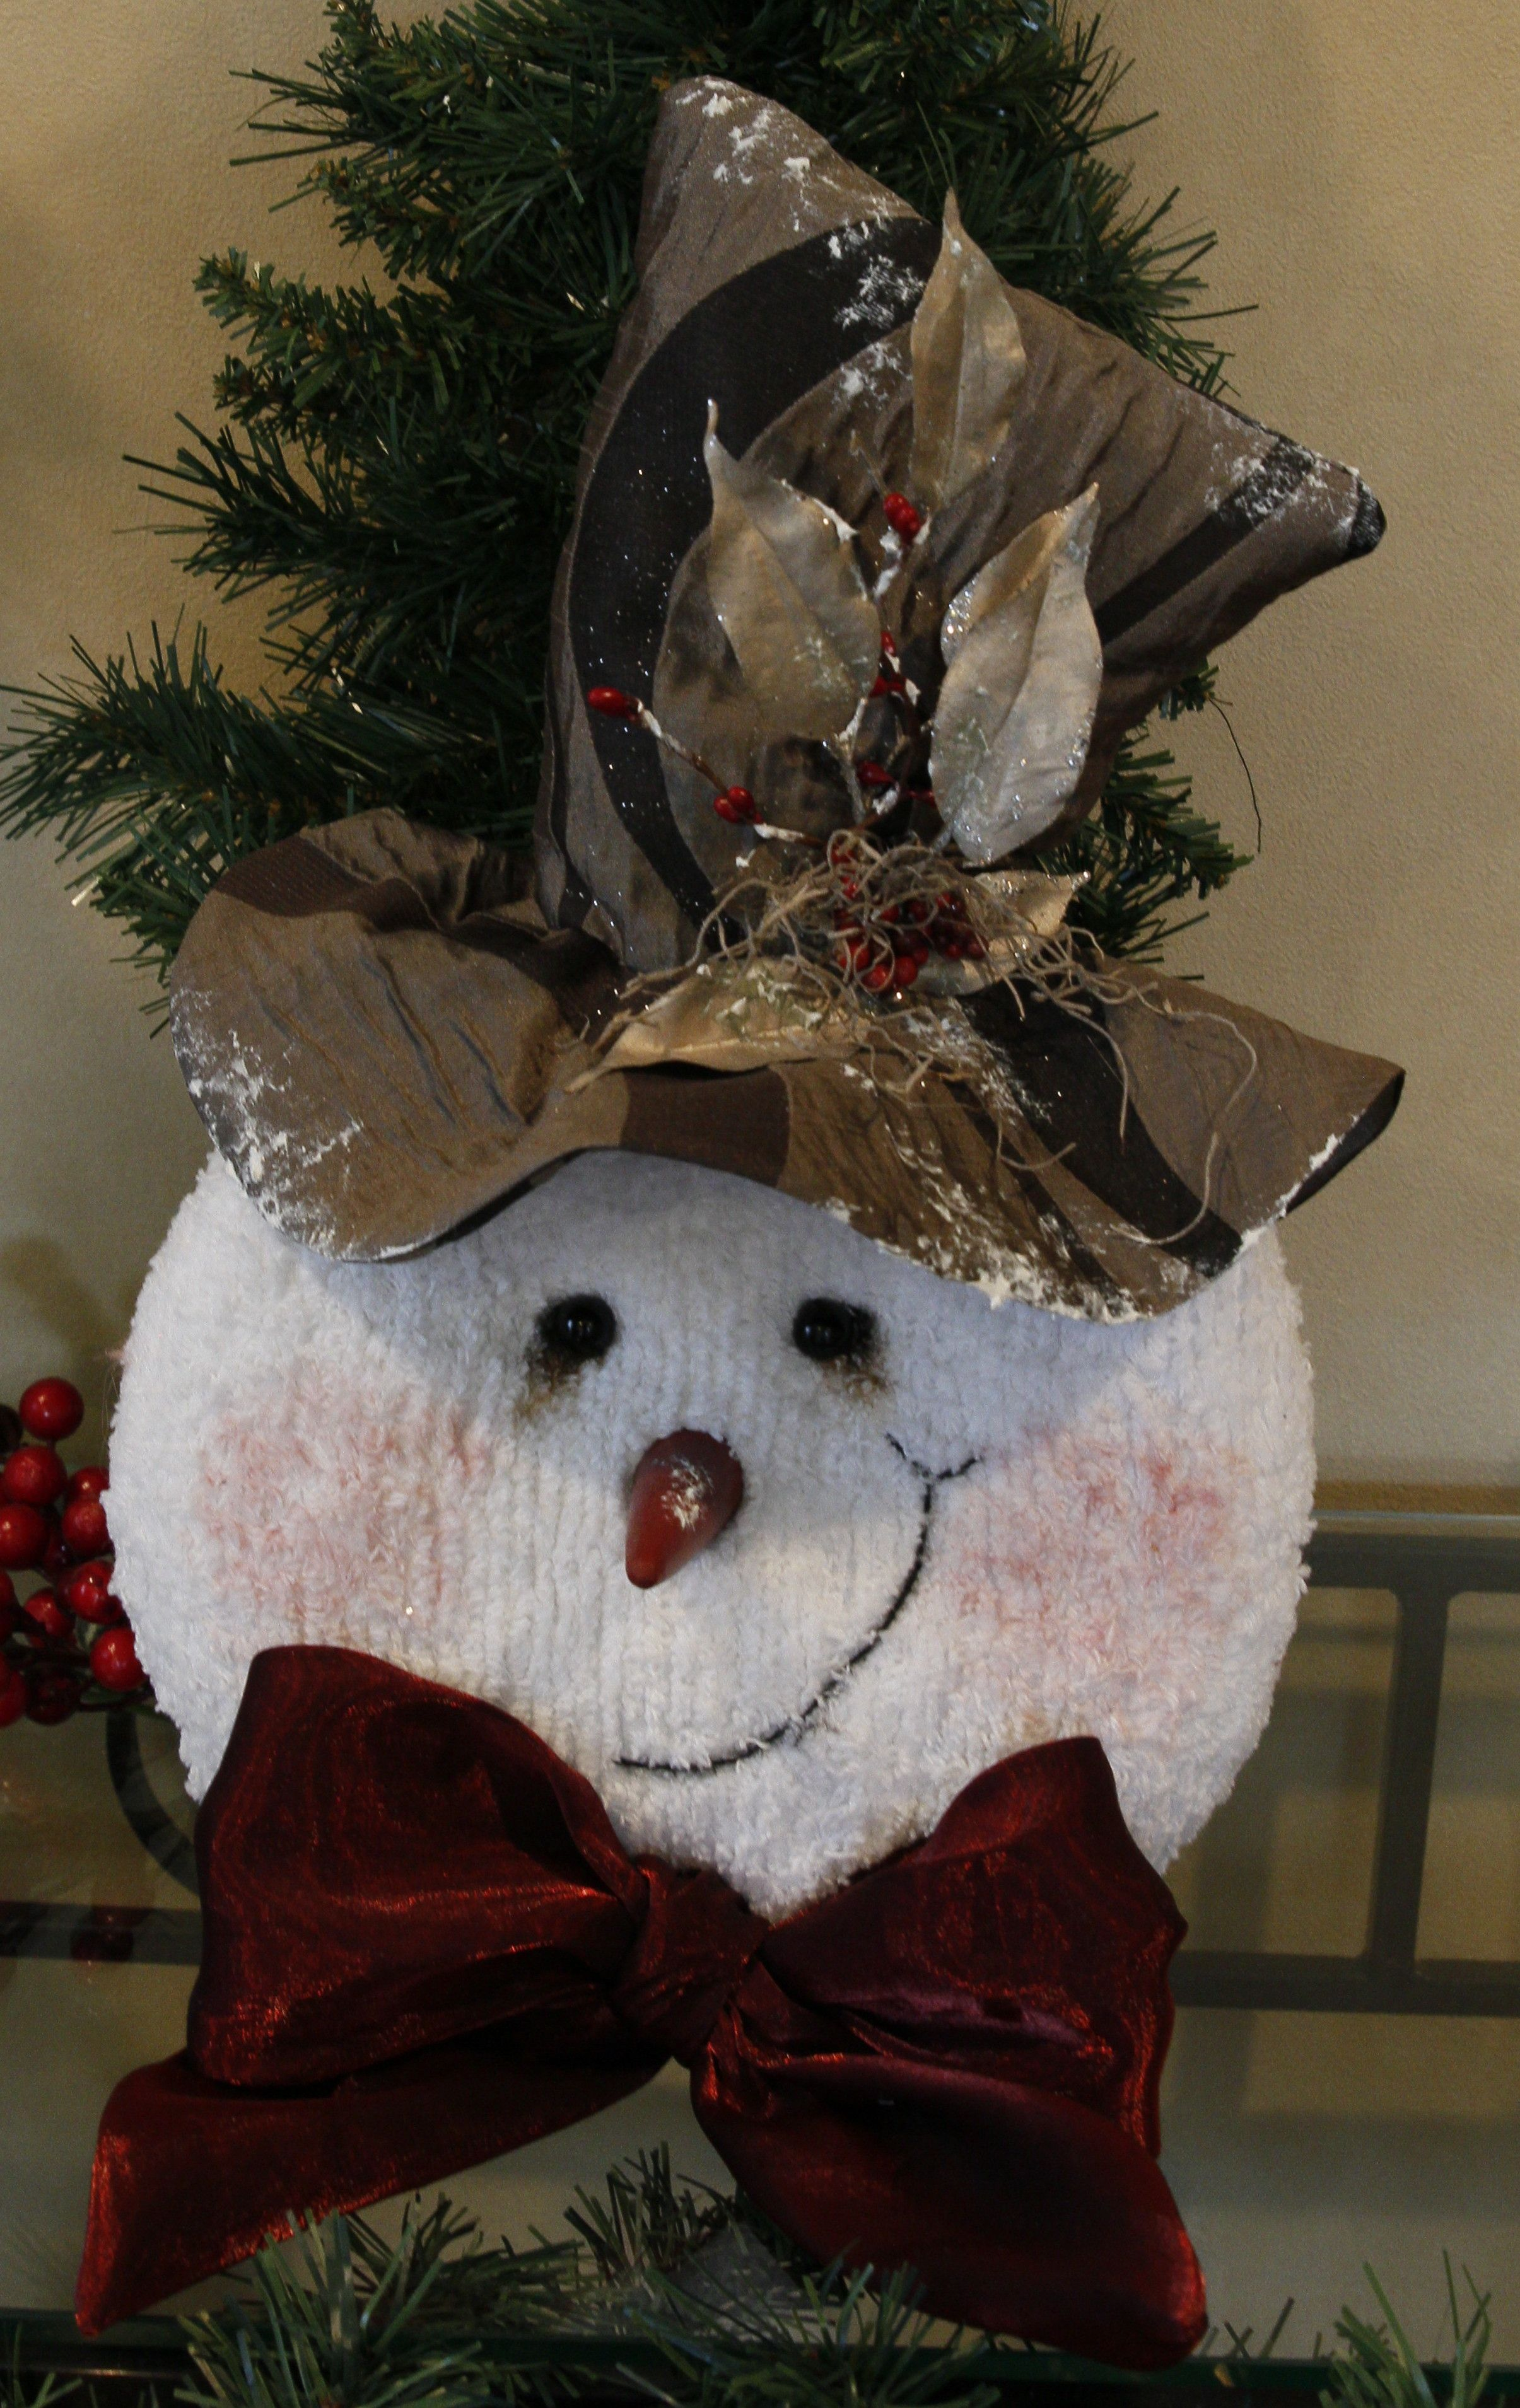 Snowman face ornament - Snowman Face Wallhanging By Thechristmasden On Etsy